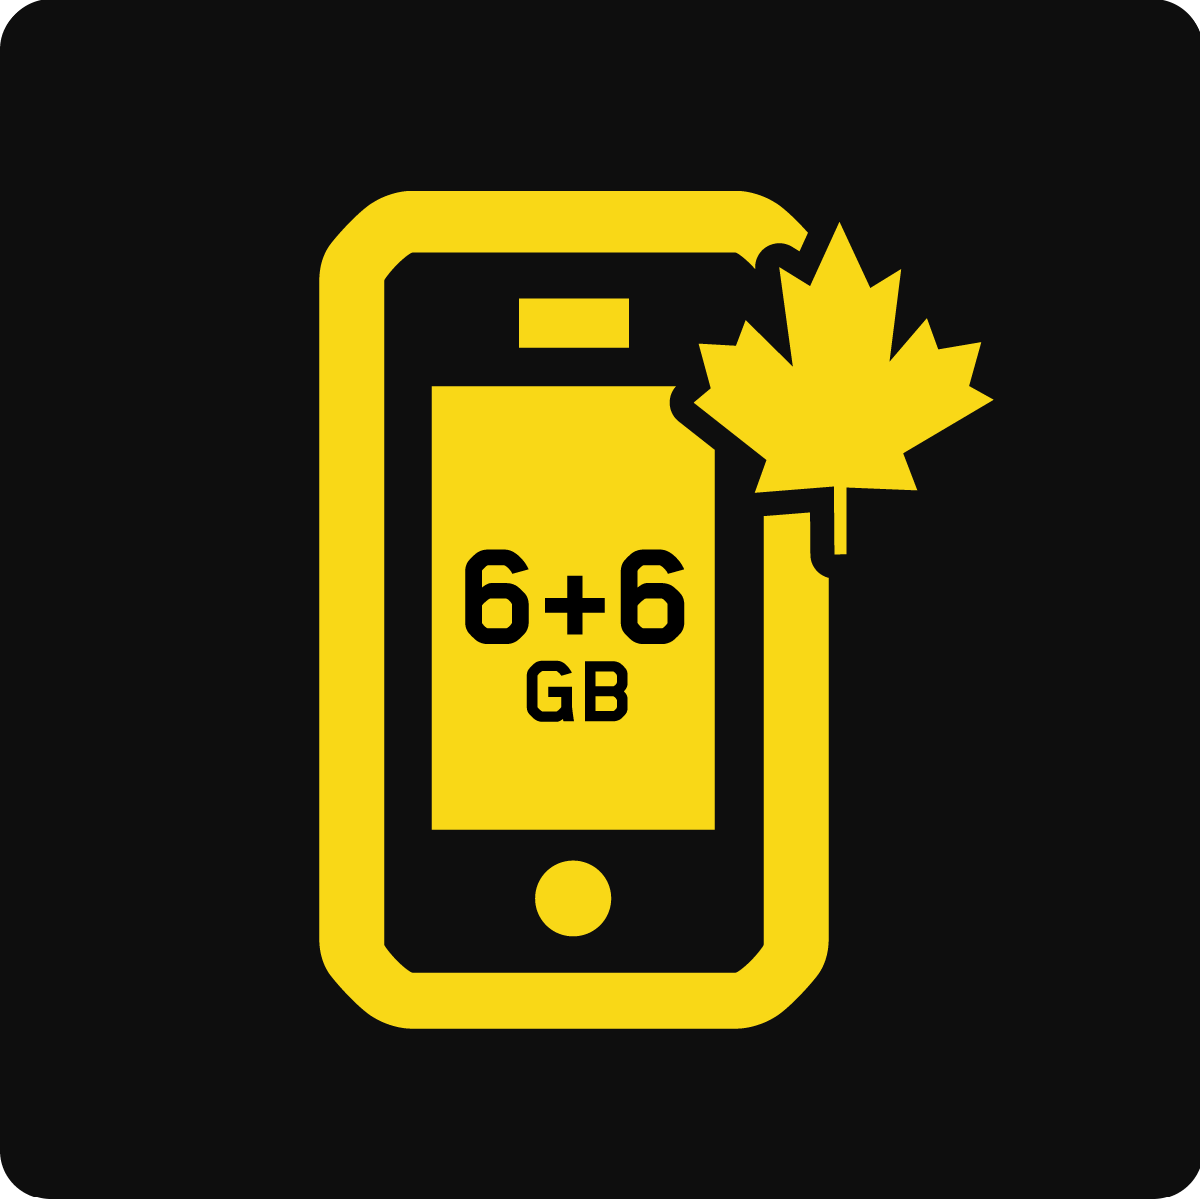 69 95 plus tax clipart graphic royalty free Canada 6 GB + 6 GB Business Mobile plan graphic royalty free